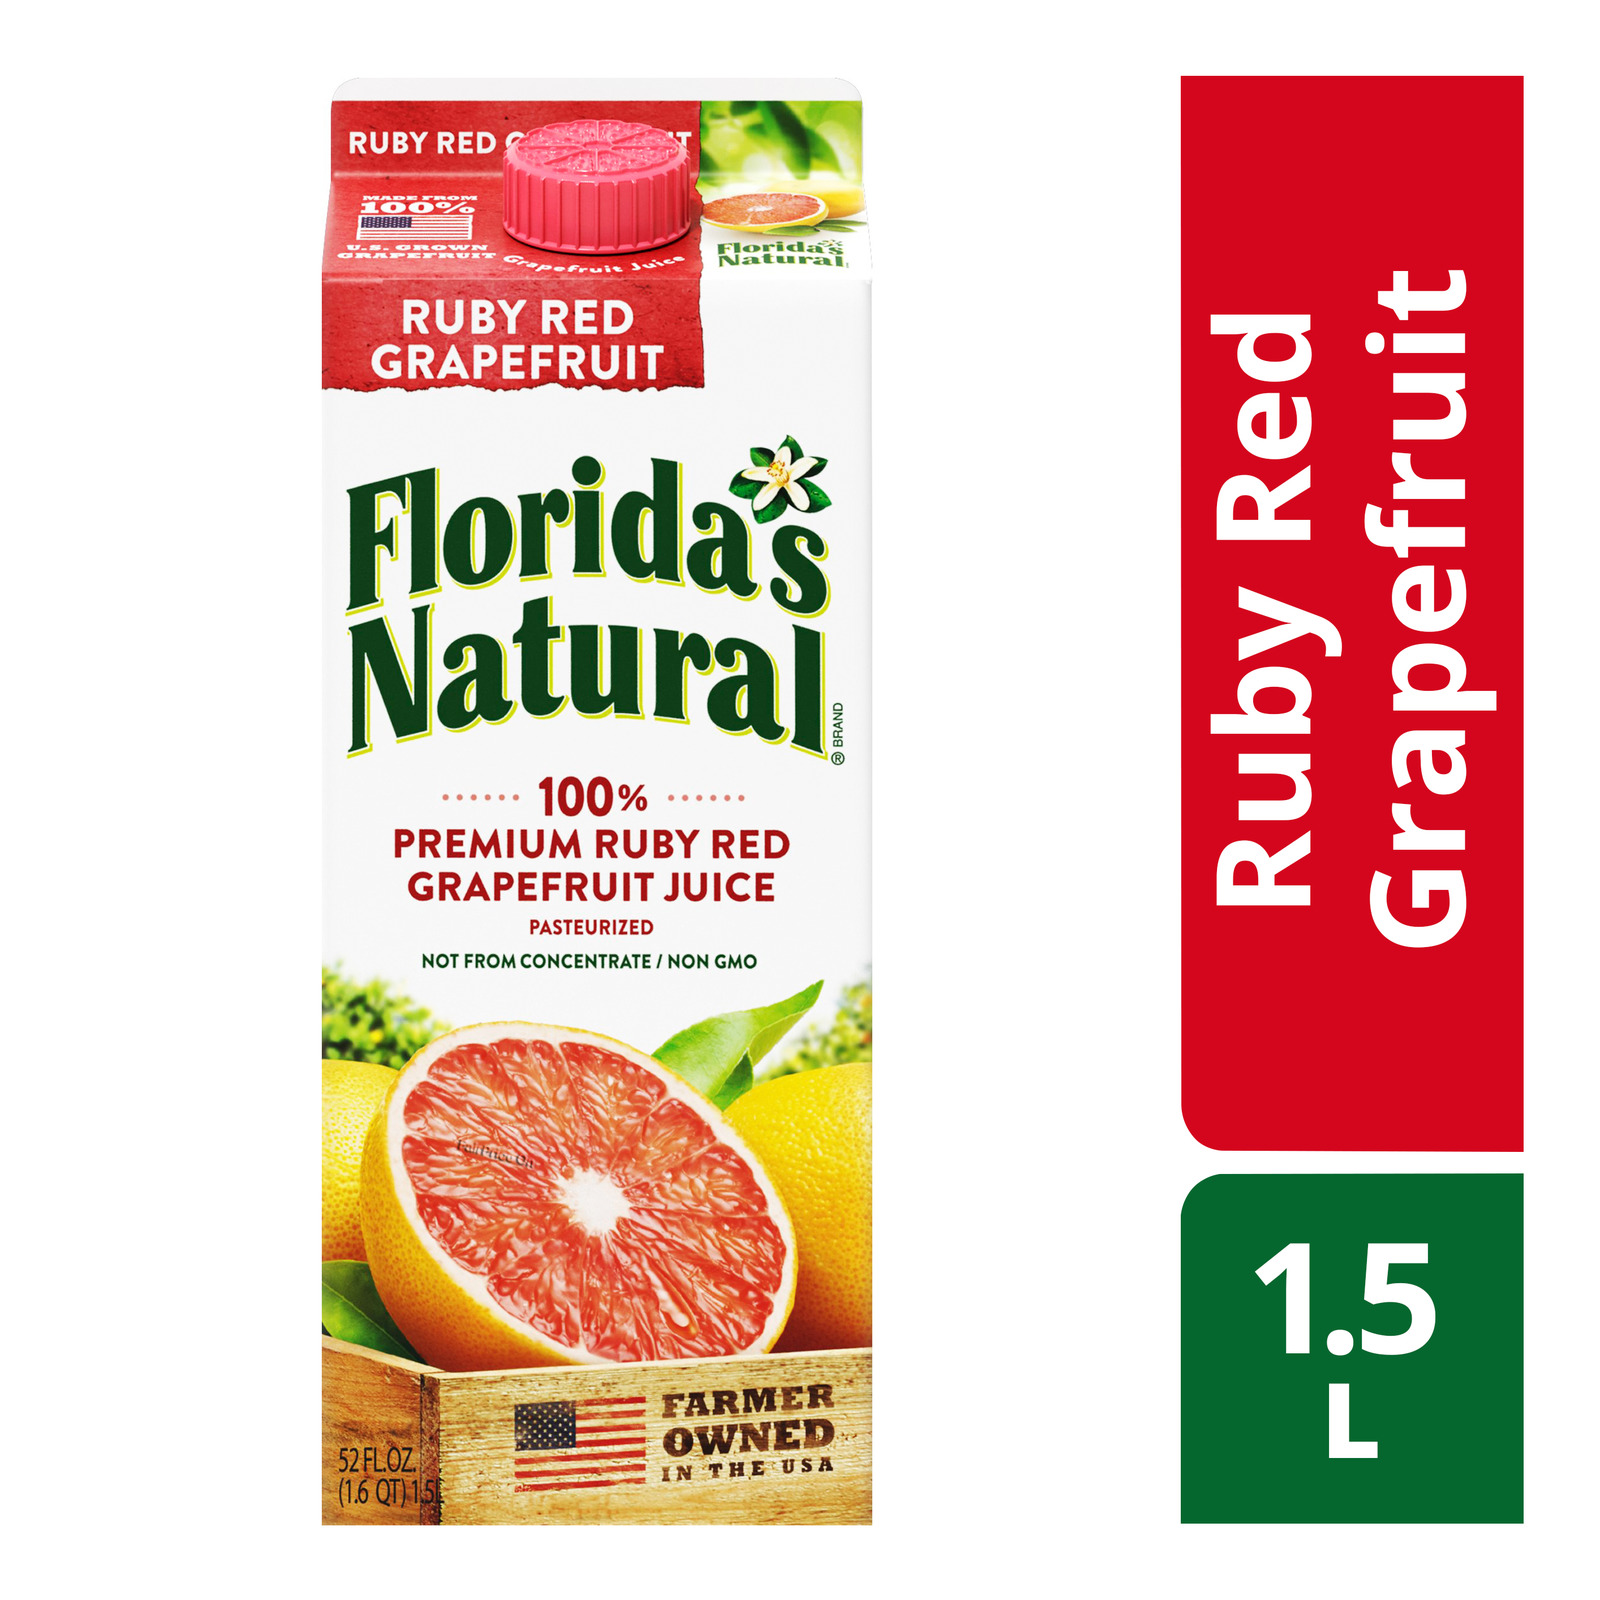 Florida's Natural 100% Fresh Juice - Ruby Red Grapefruit